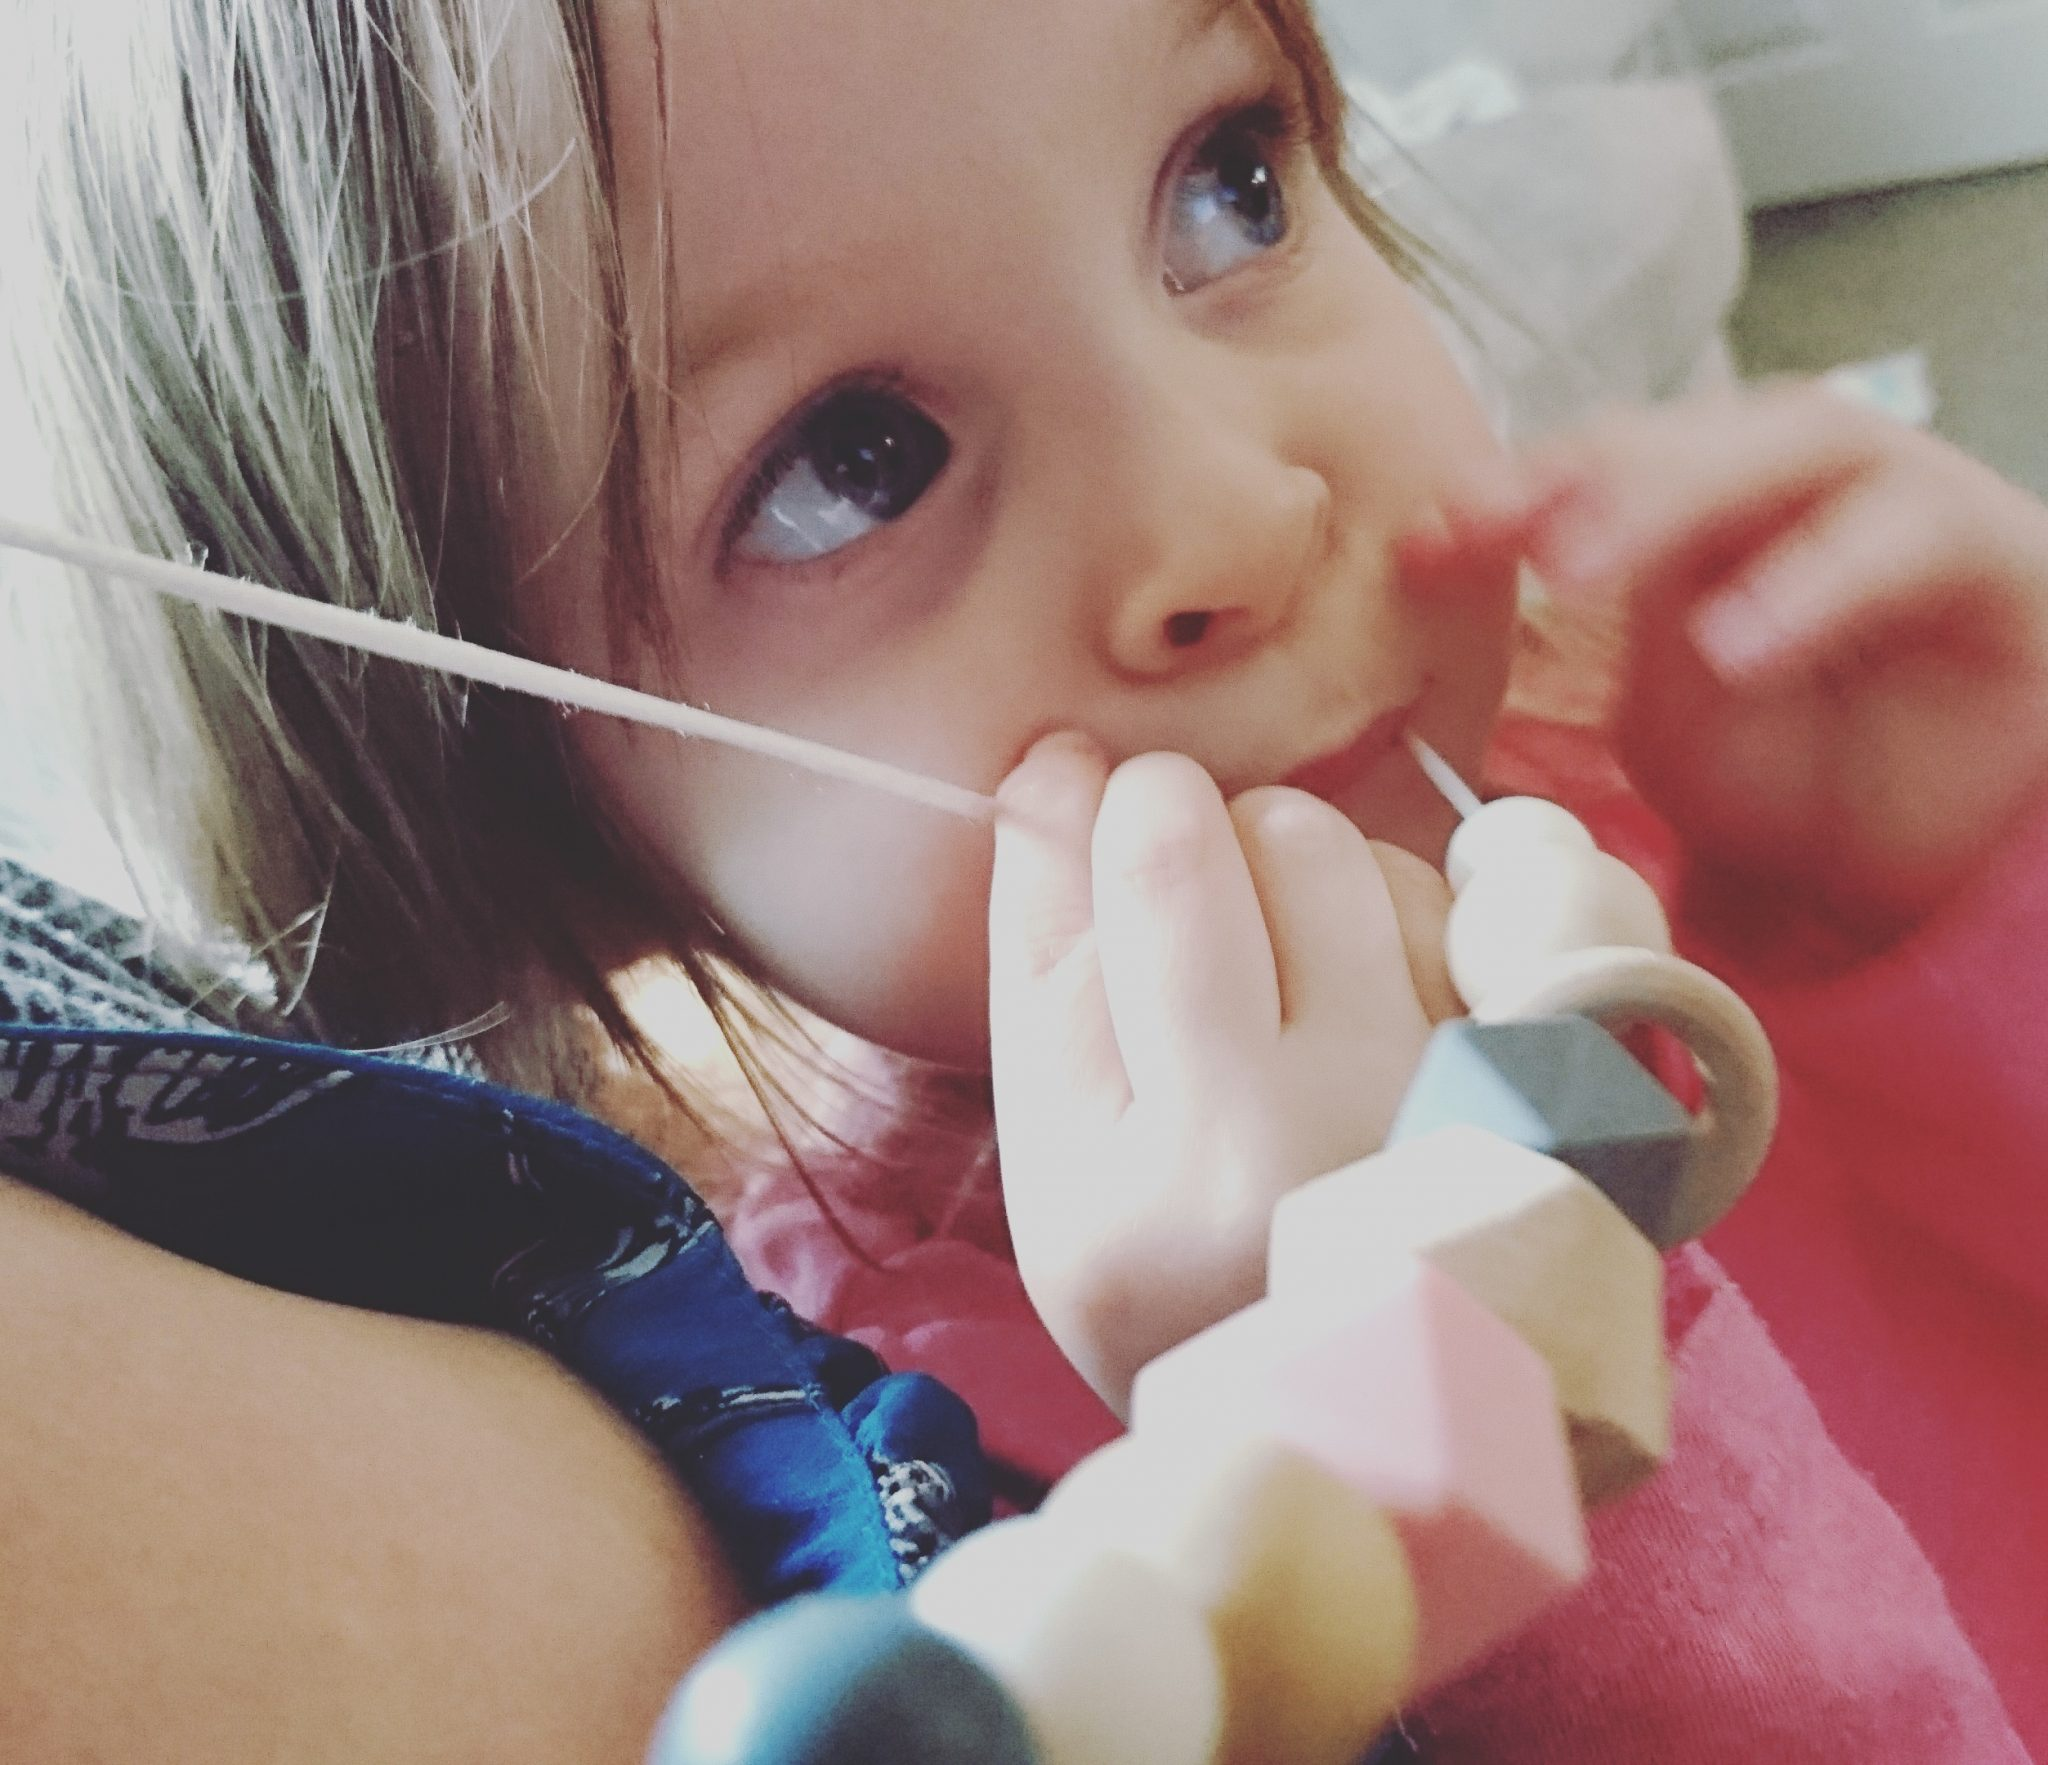 teething necklace - even the toddler enjoys it